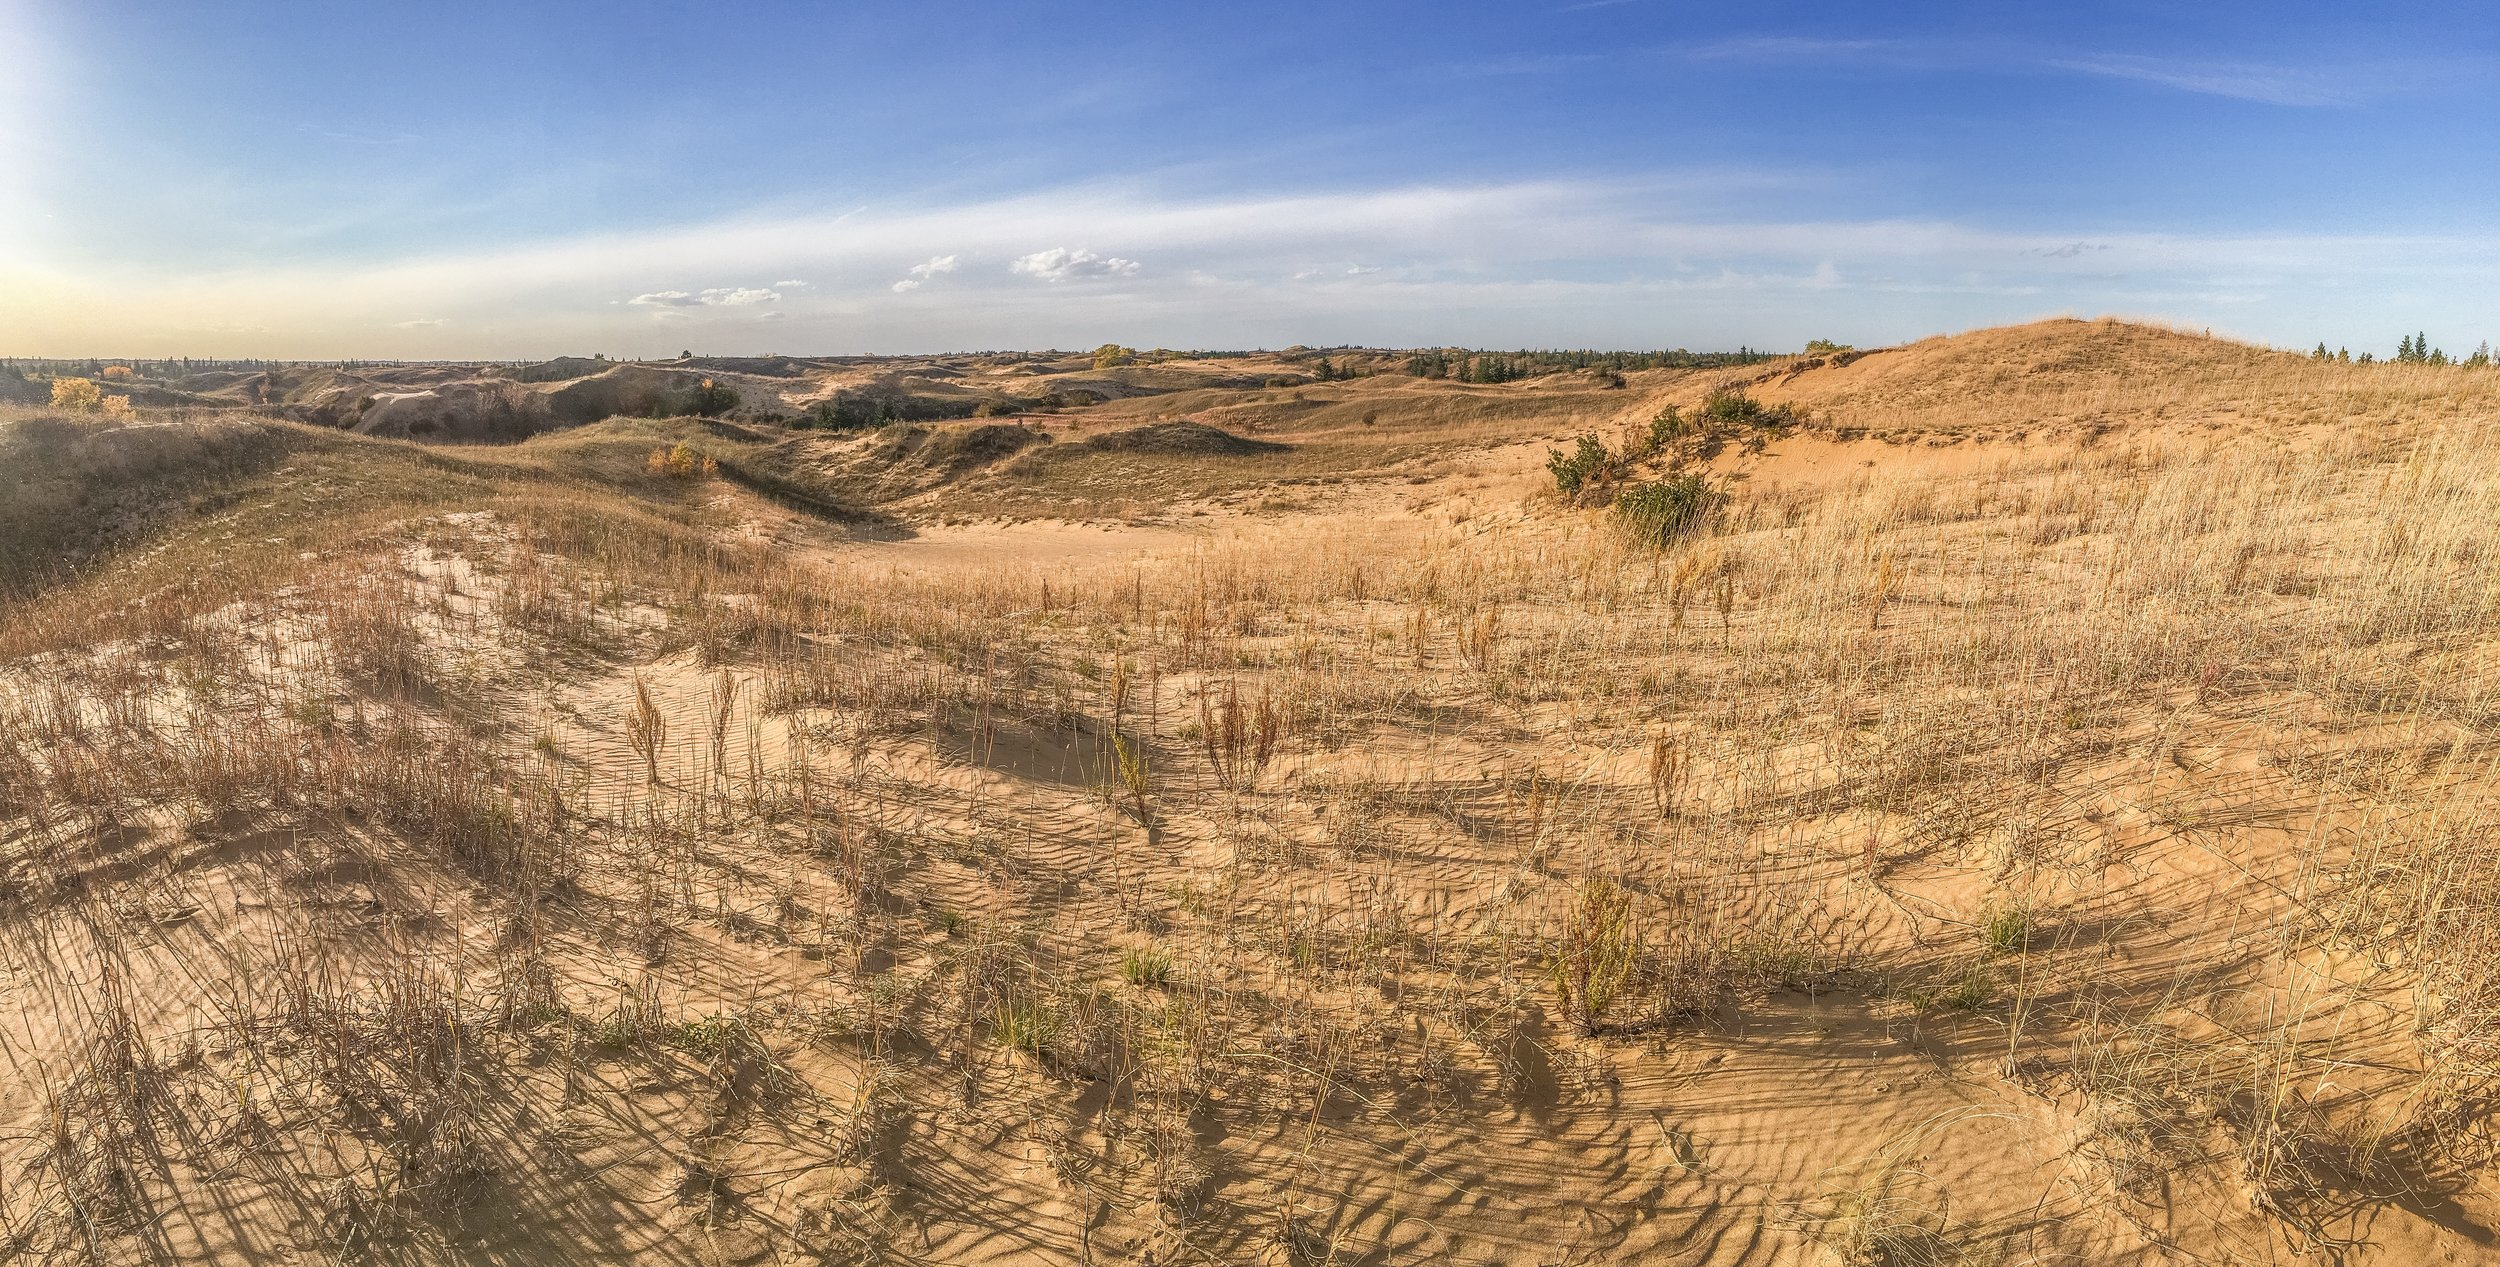 Endless waves of dunes in the Canadian sand hills.